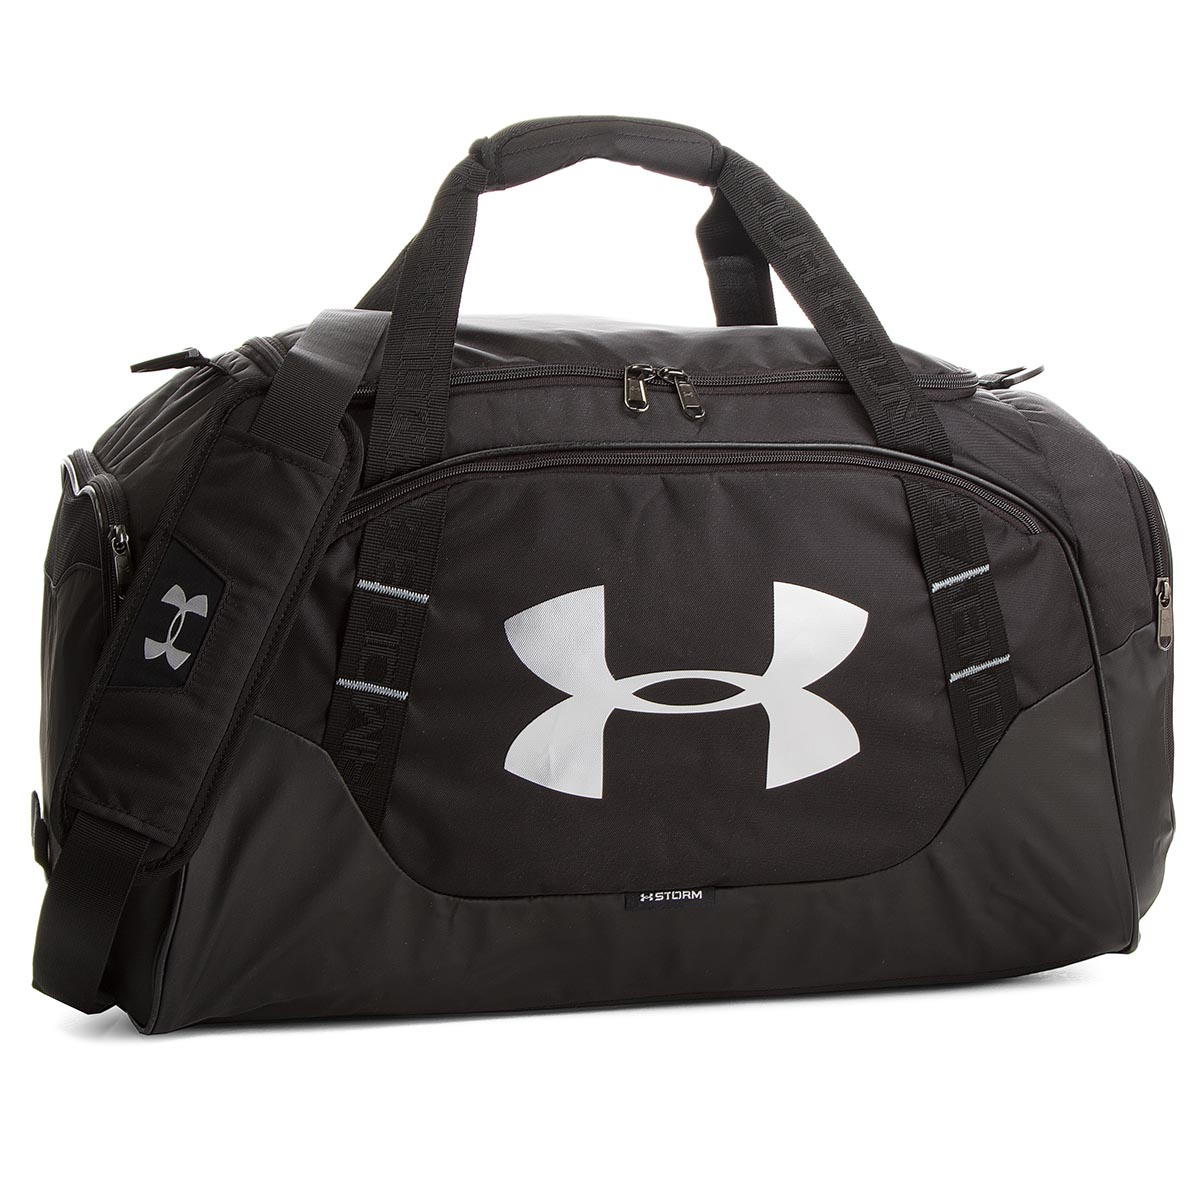 34fdc7dee2 Bag UNDER ARMOUR - Undeniable Duffle 3.0 1300214-001 Sm/Blk/Blk/Slv ...